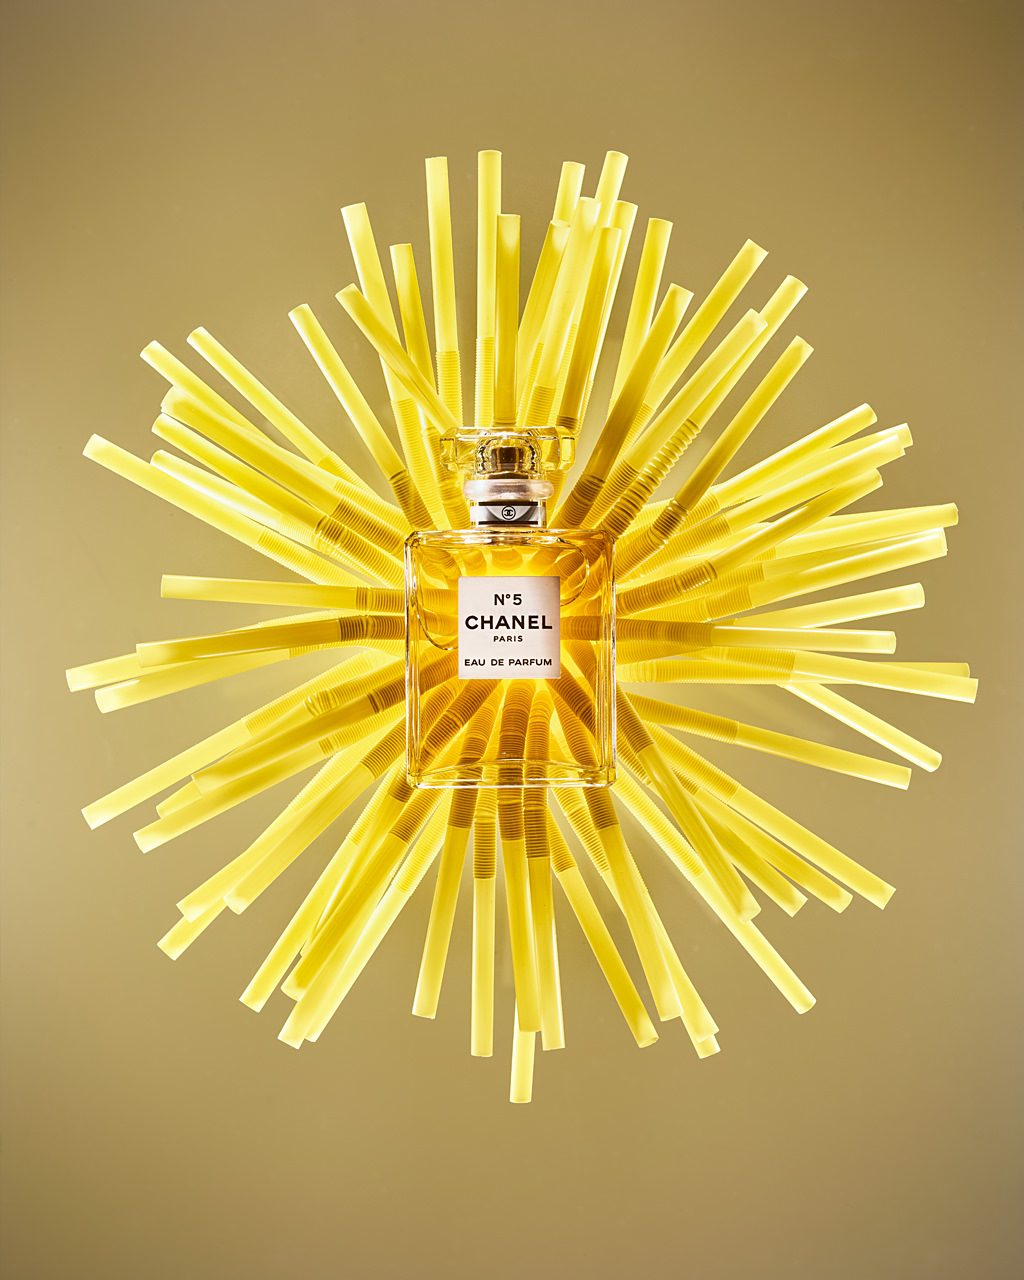 Sabine-Scheer-productphotography-scent-editorial-straws-yellow